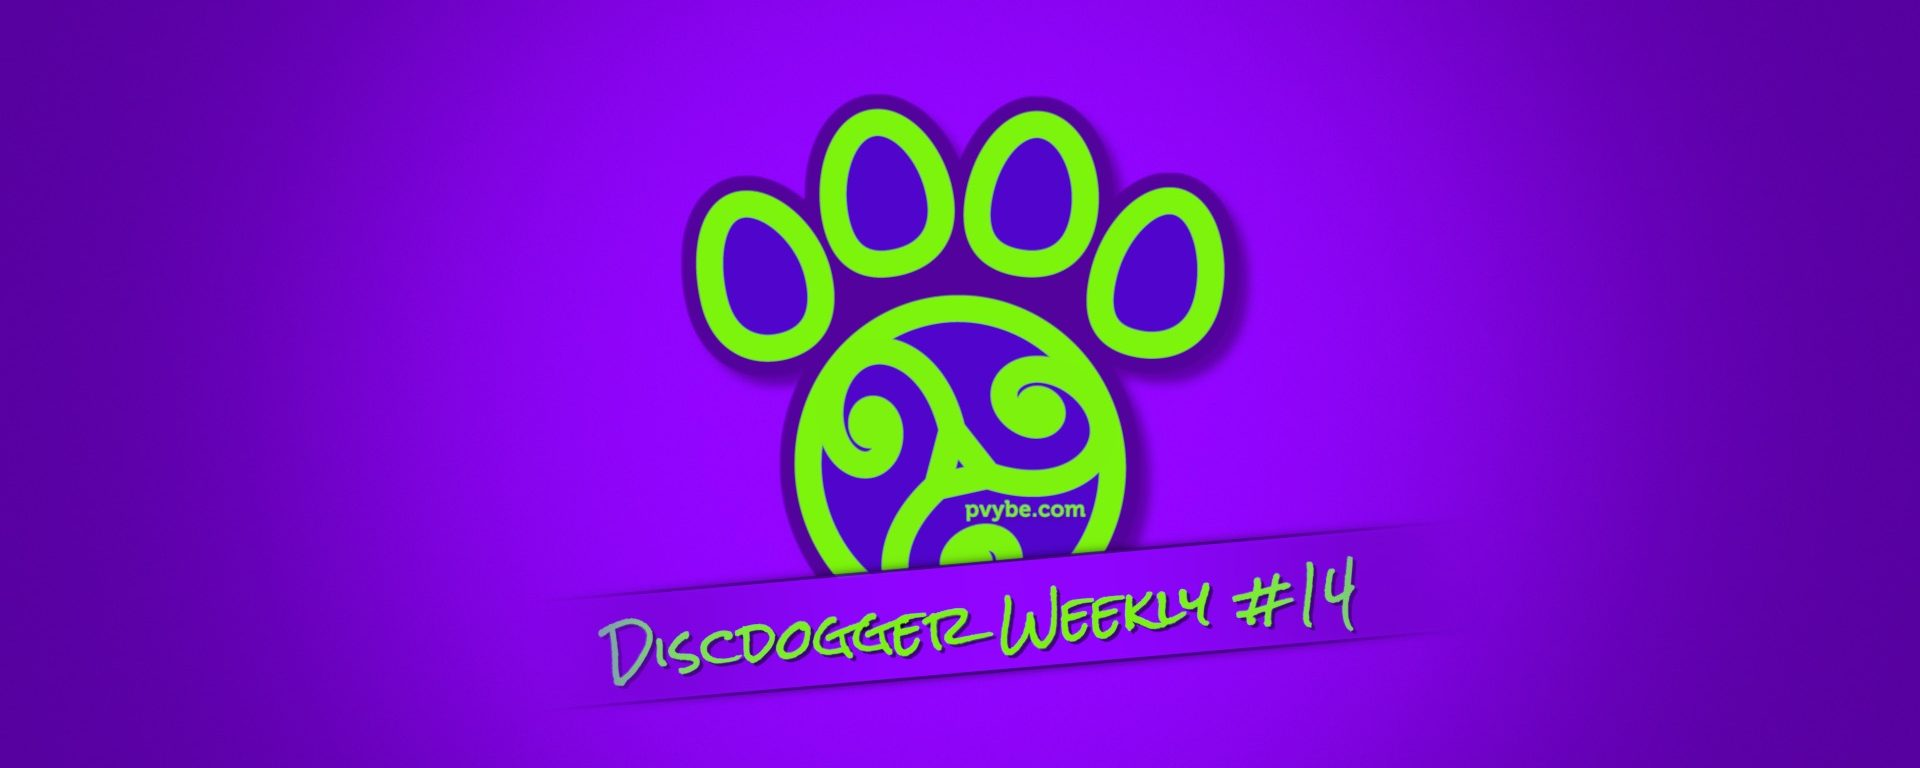 DiscDogger Weekly #14 – Puppies, Premature Ejumpulation, Bite Club, and Turning the World UpSide Down